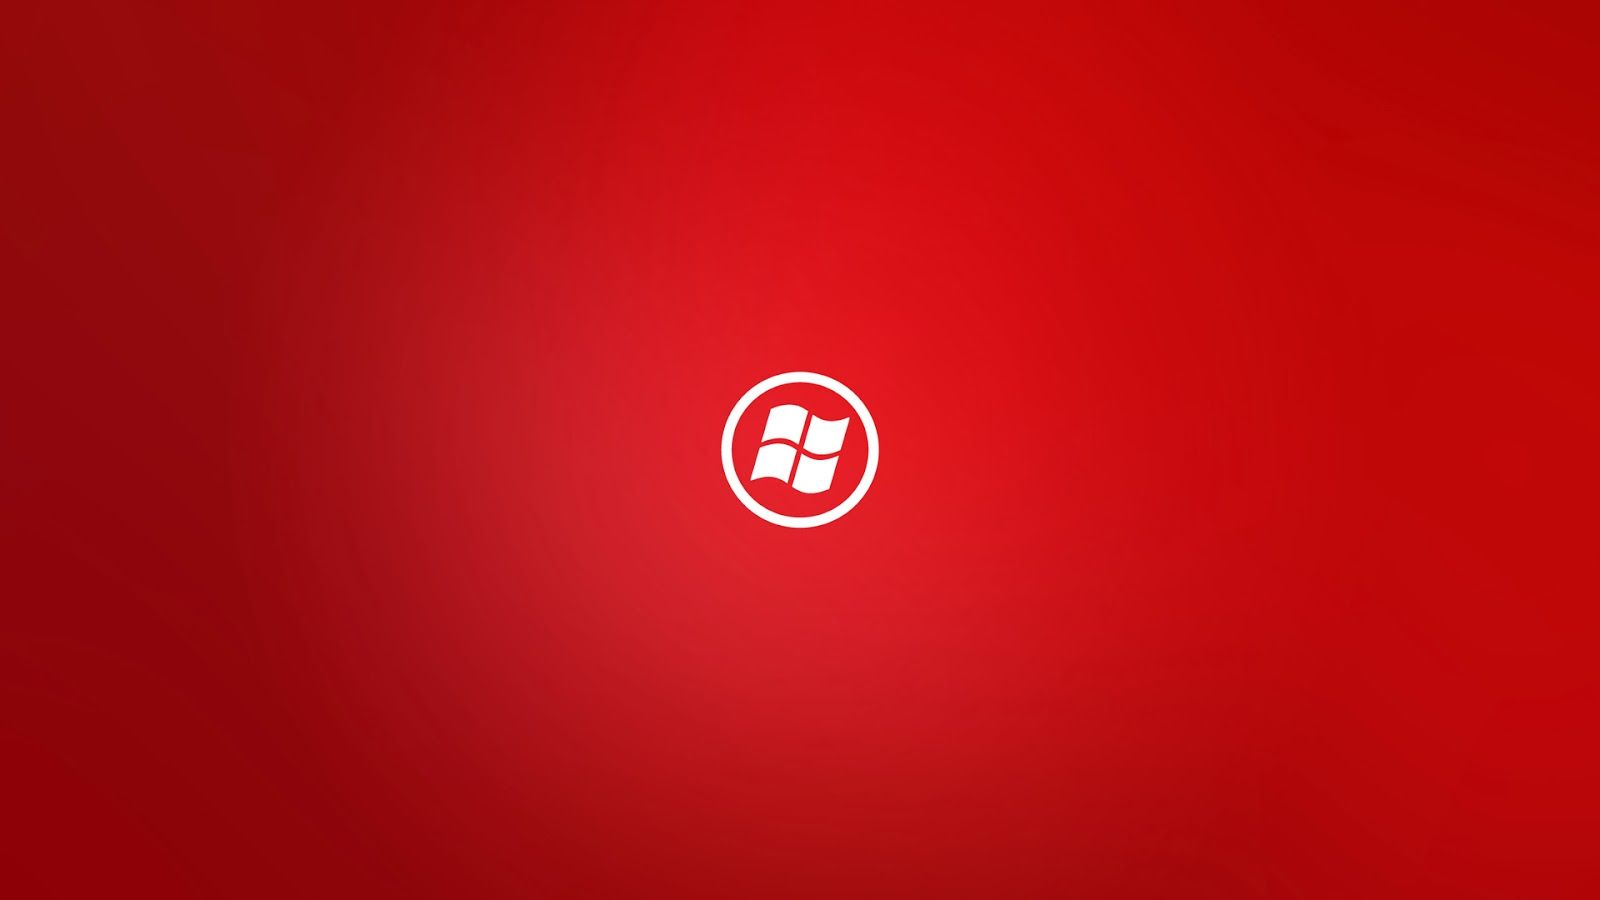 Hd Wallpapers Windows 7 Wallpaper Red Red Windows System Wallpaper Windows Wallpaper